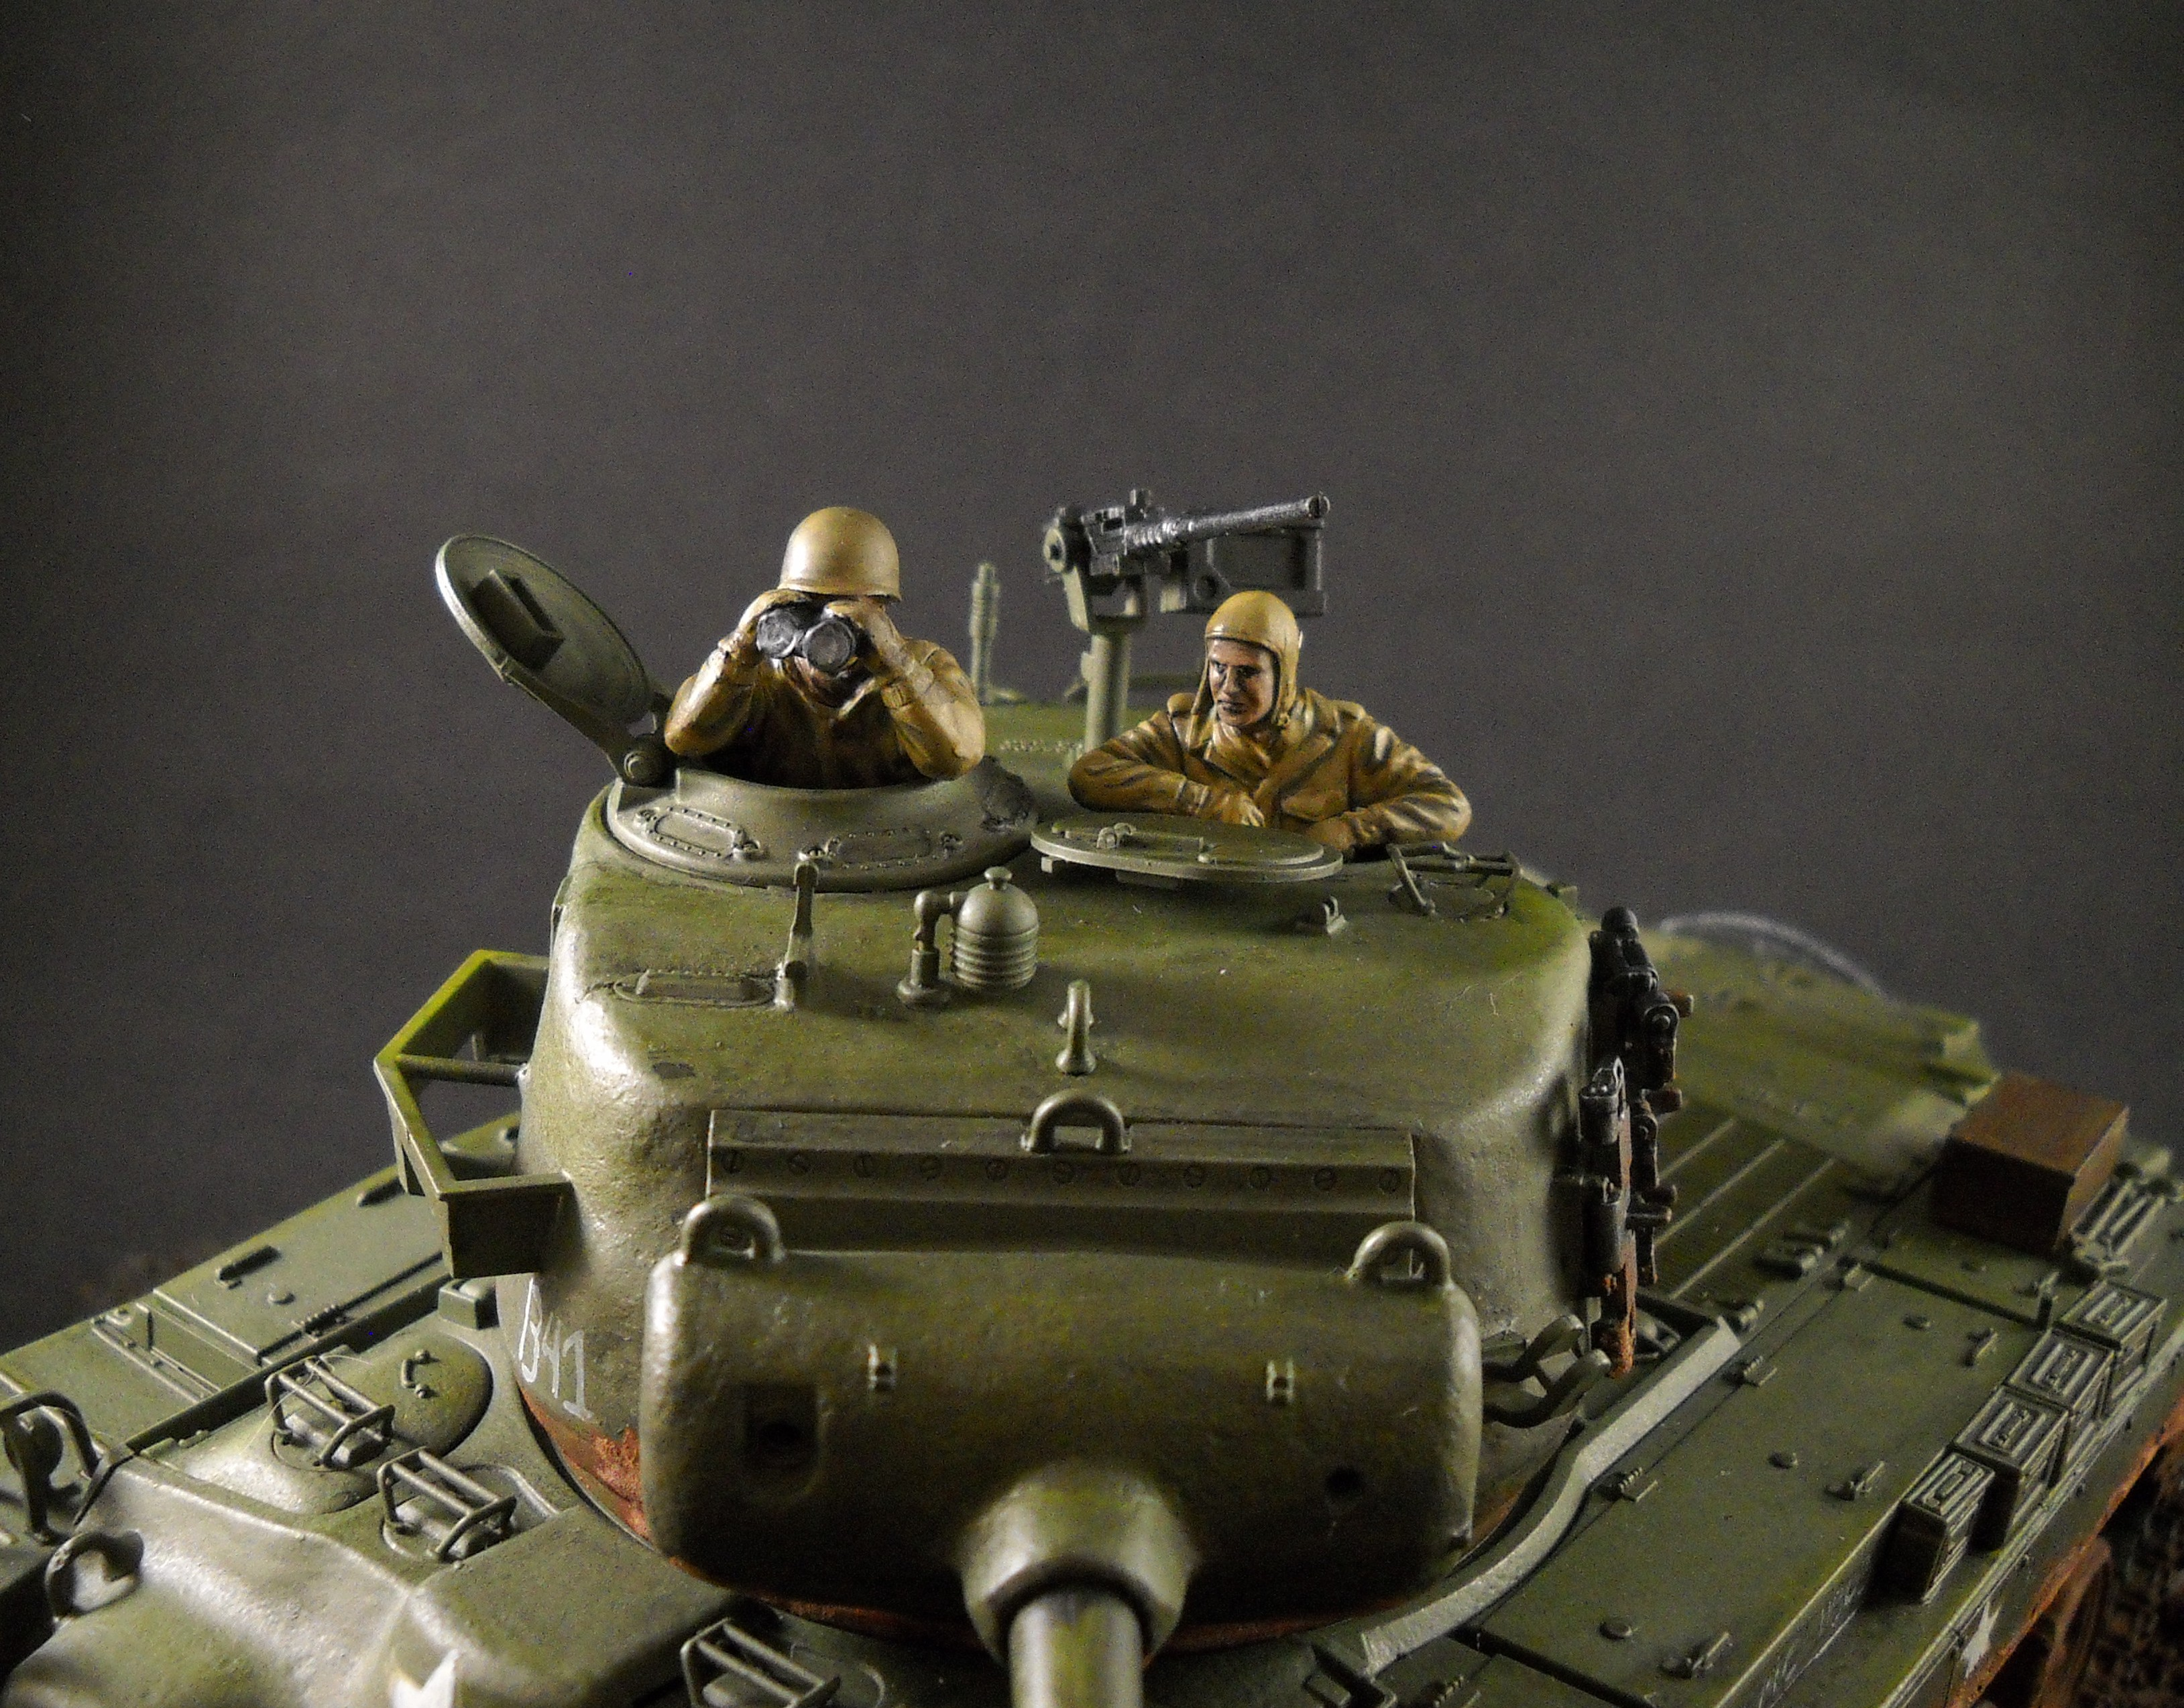 M26 Pershing, 1/35th scale from Tamiya